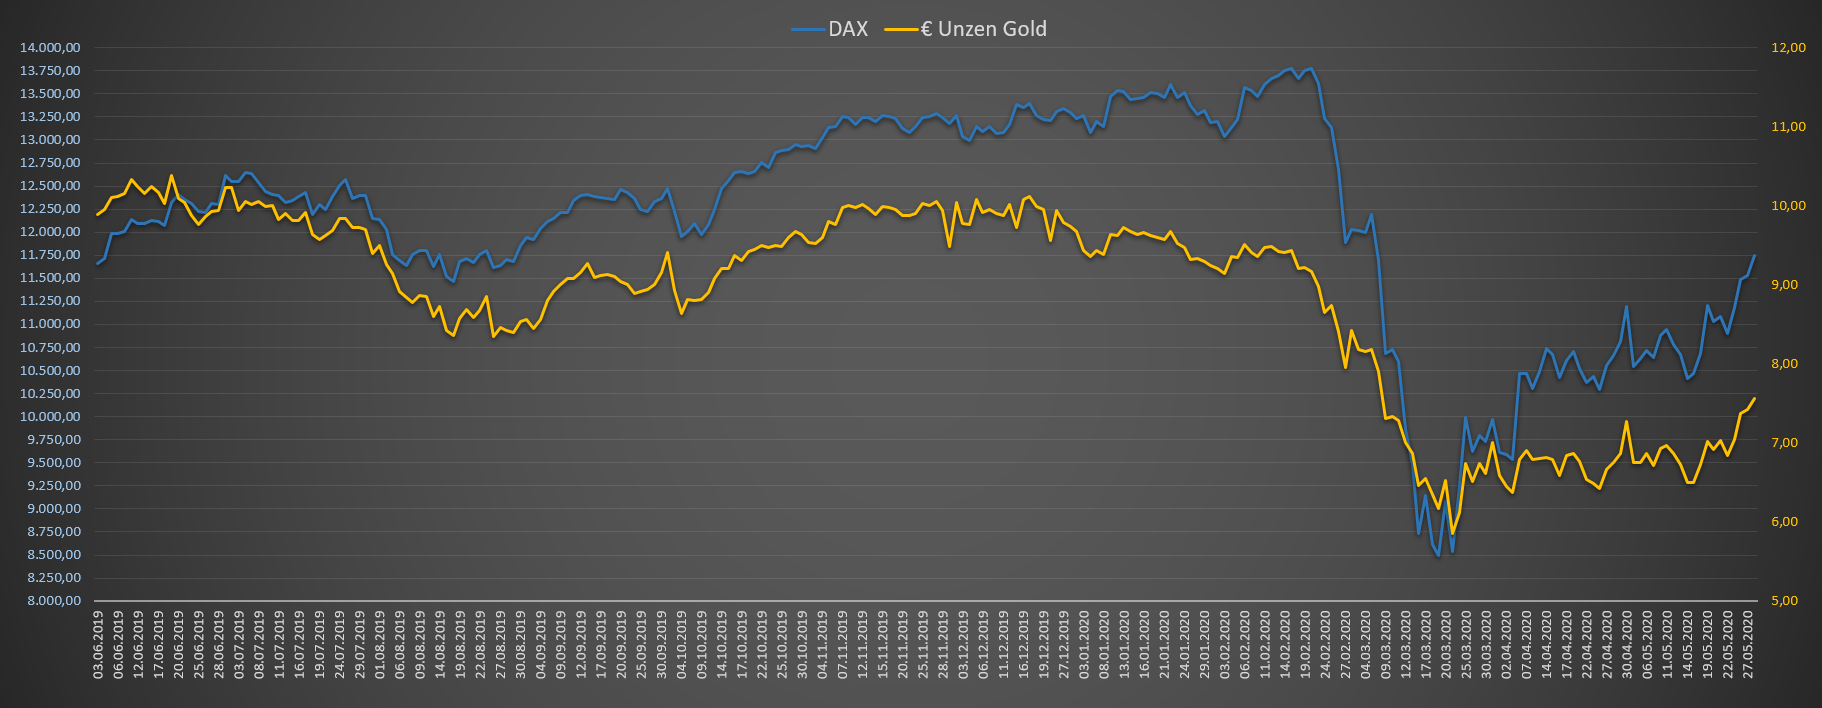 DAX Bewertung in Unzen Gold in Euro - Chart 12 Monate